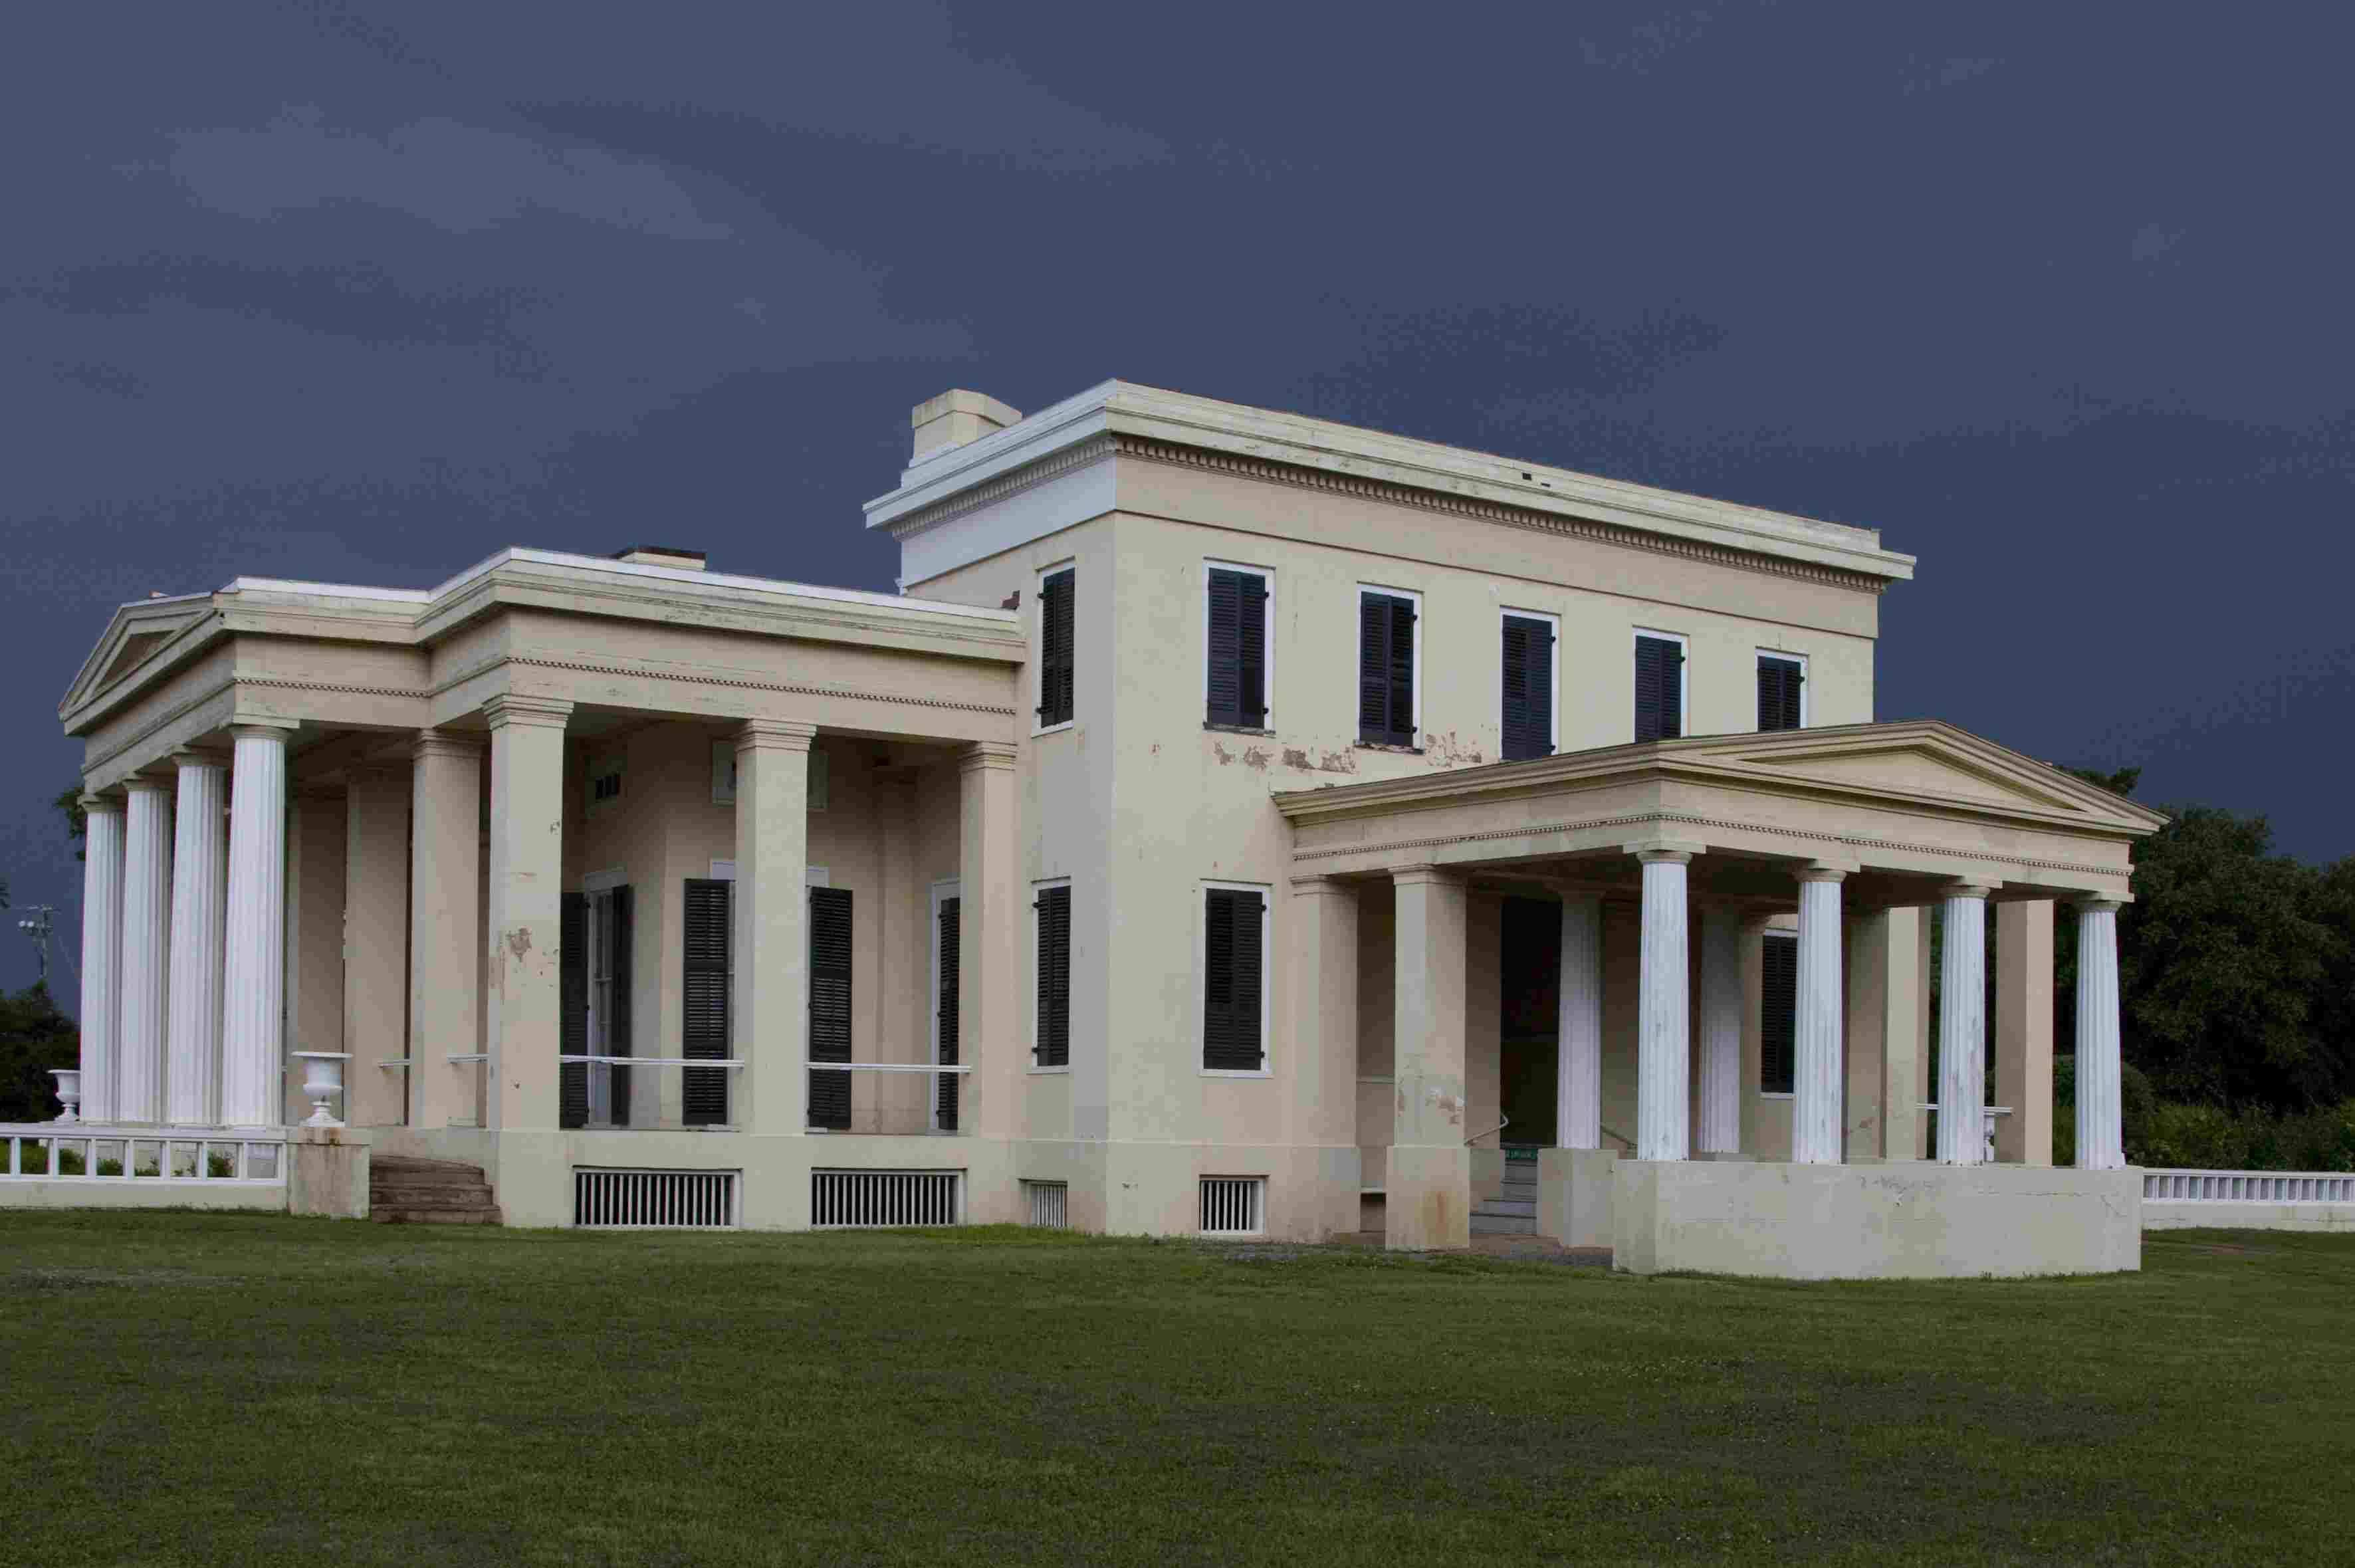 white mansion with added porticos with pediments and columns